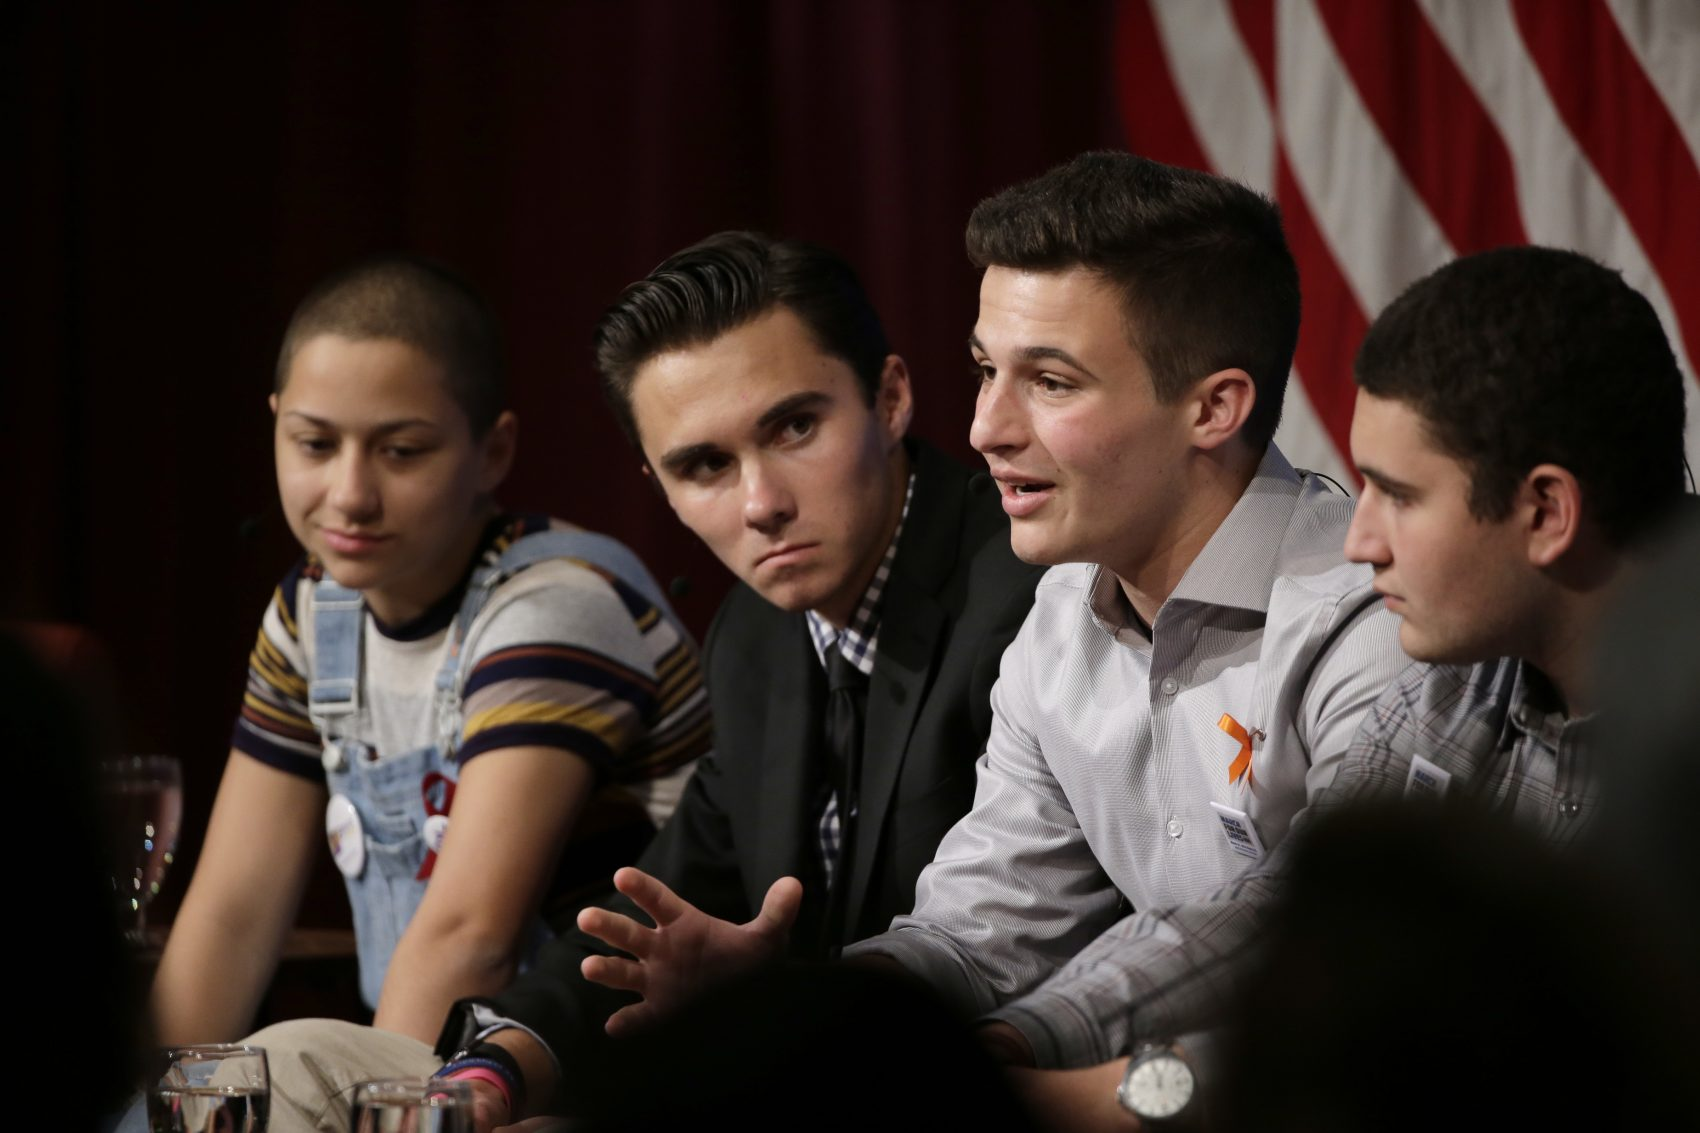 Marjory Stoneman Douglas High School students and mass shooting survivors, from the left, Emma Gonzalez, David Hogg, Cameron Kasky and Alex Wind participate in a panel discussion about guns, Tuesday at Harvard Kennedy School's Institute of Politics. (Steven Senne/AP)